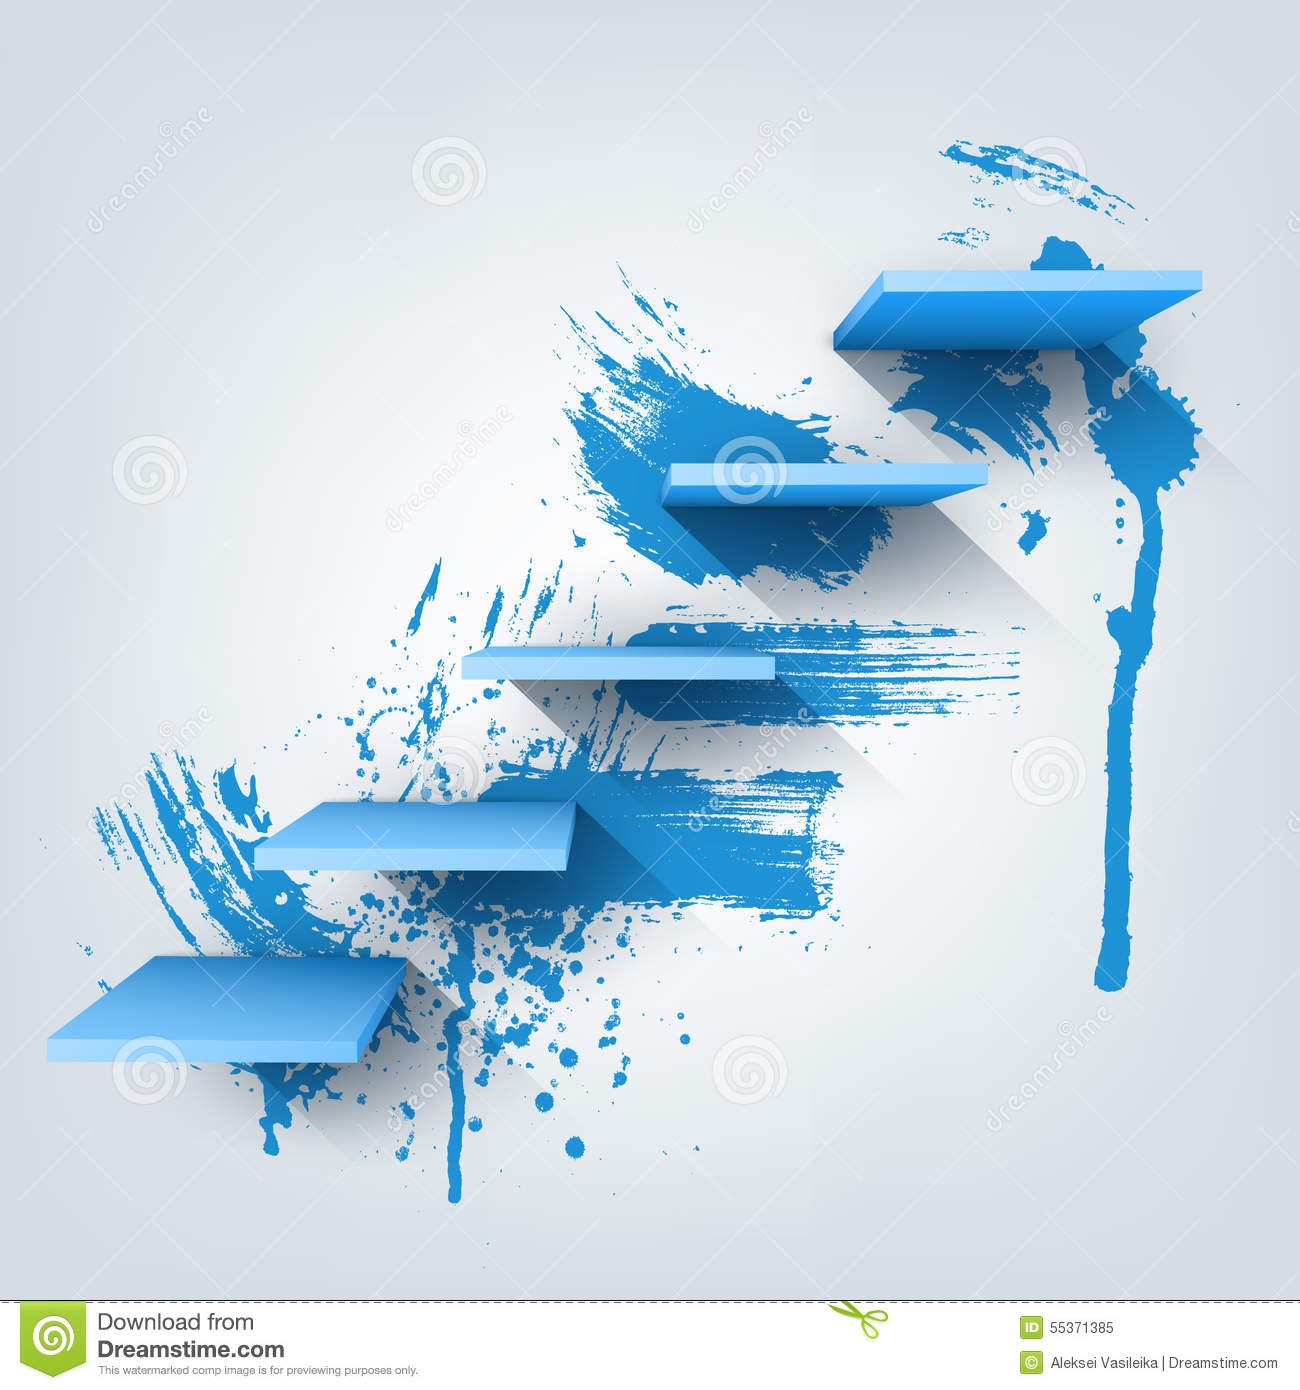 Abstract Vector Illustration. Composition Of 3d Stock Vector ...